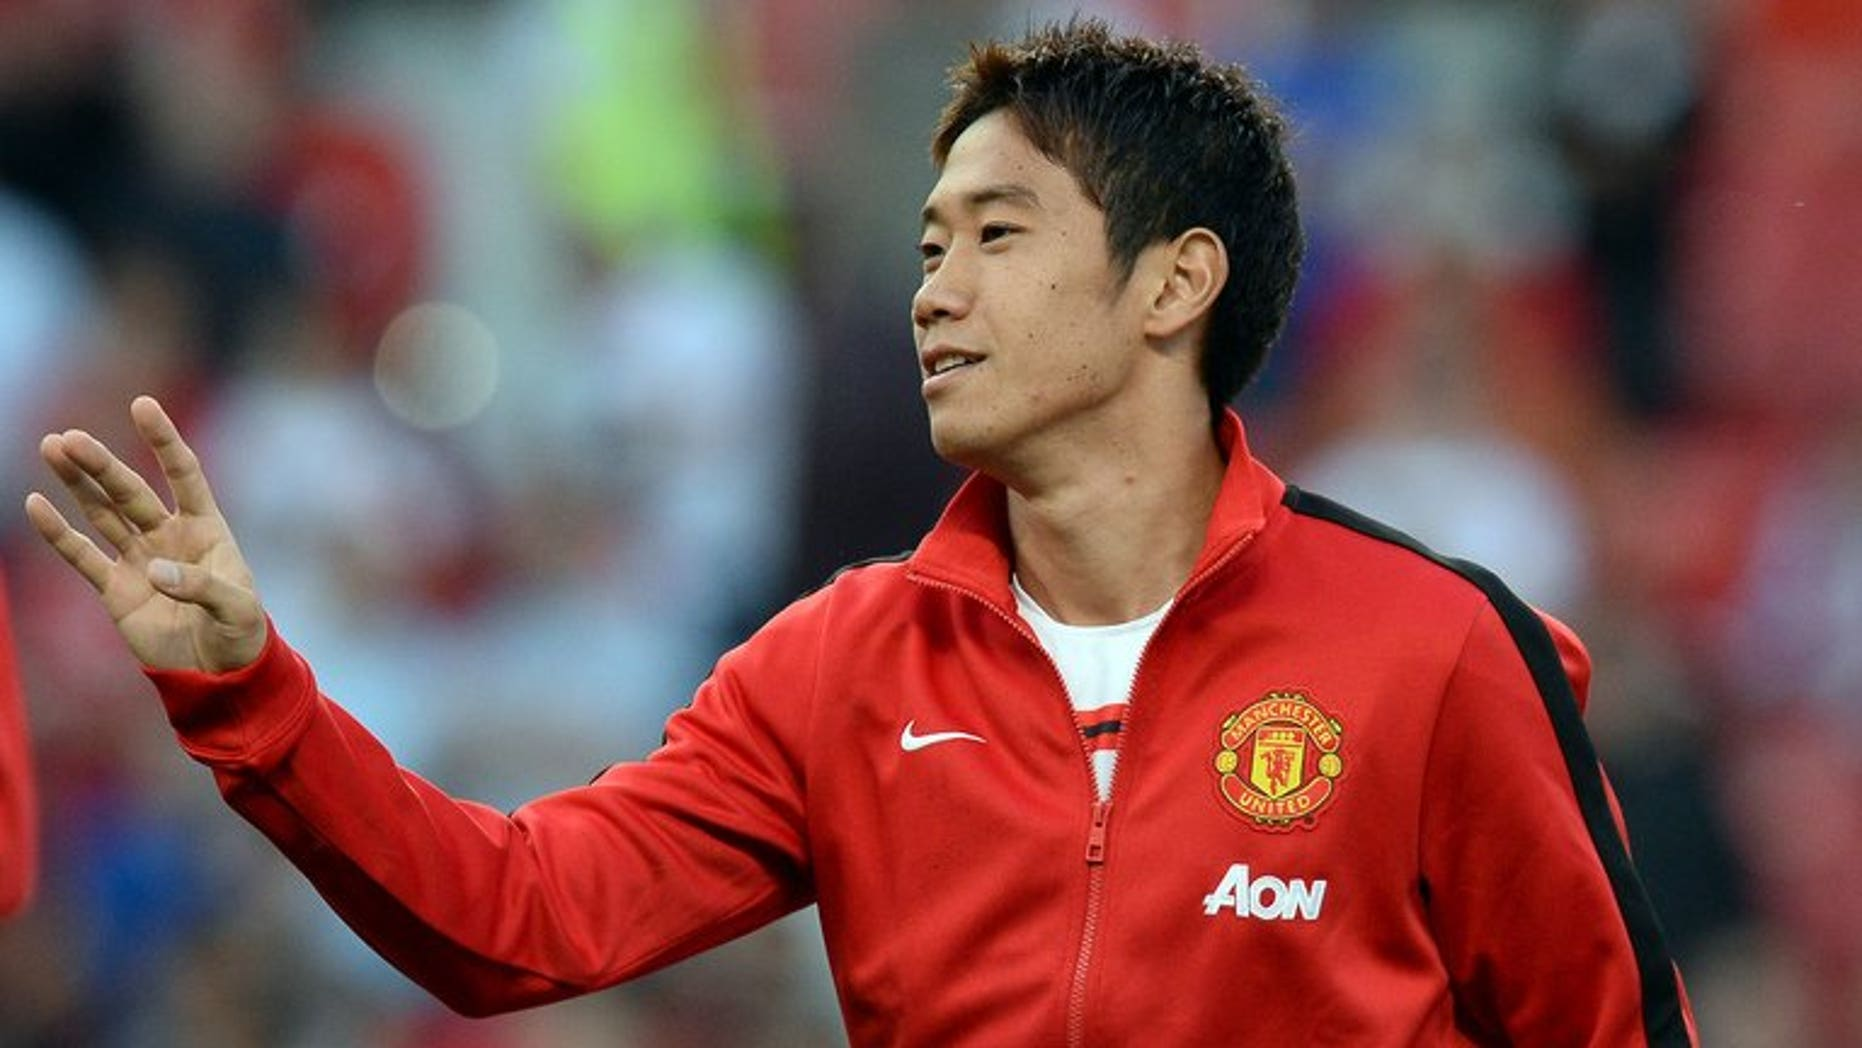 Shinji Kagawa warms up ahead of Manchester United's game against Chelsea at Old Trafford on August 26. Kagawa voiced frustration at being sidelined by new Manchester United manager David Moyes after scoring a cracker in his country's 3-1 win over Ghana on Tuesday.